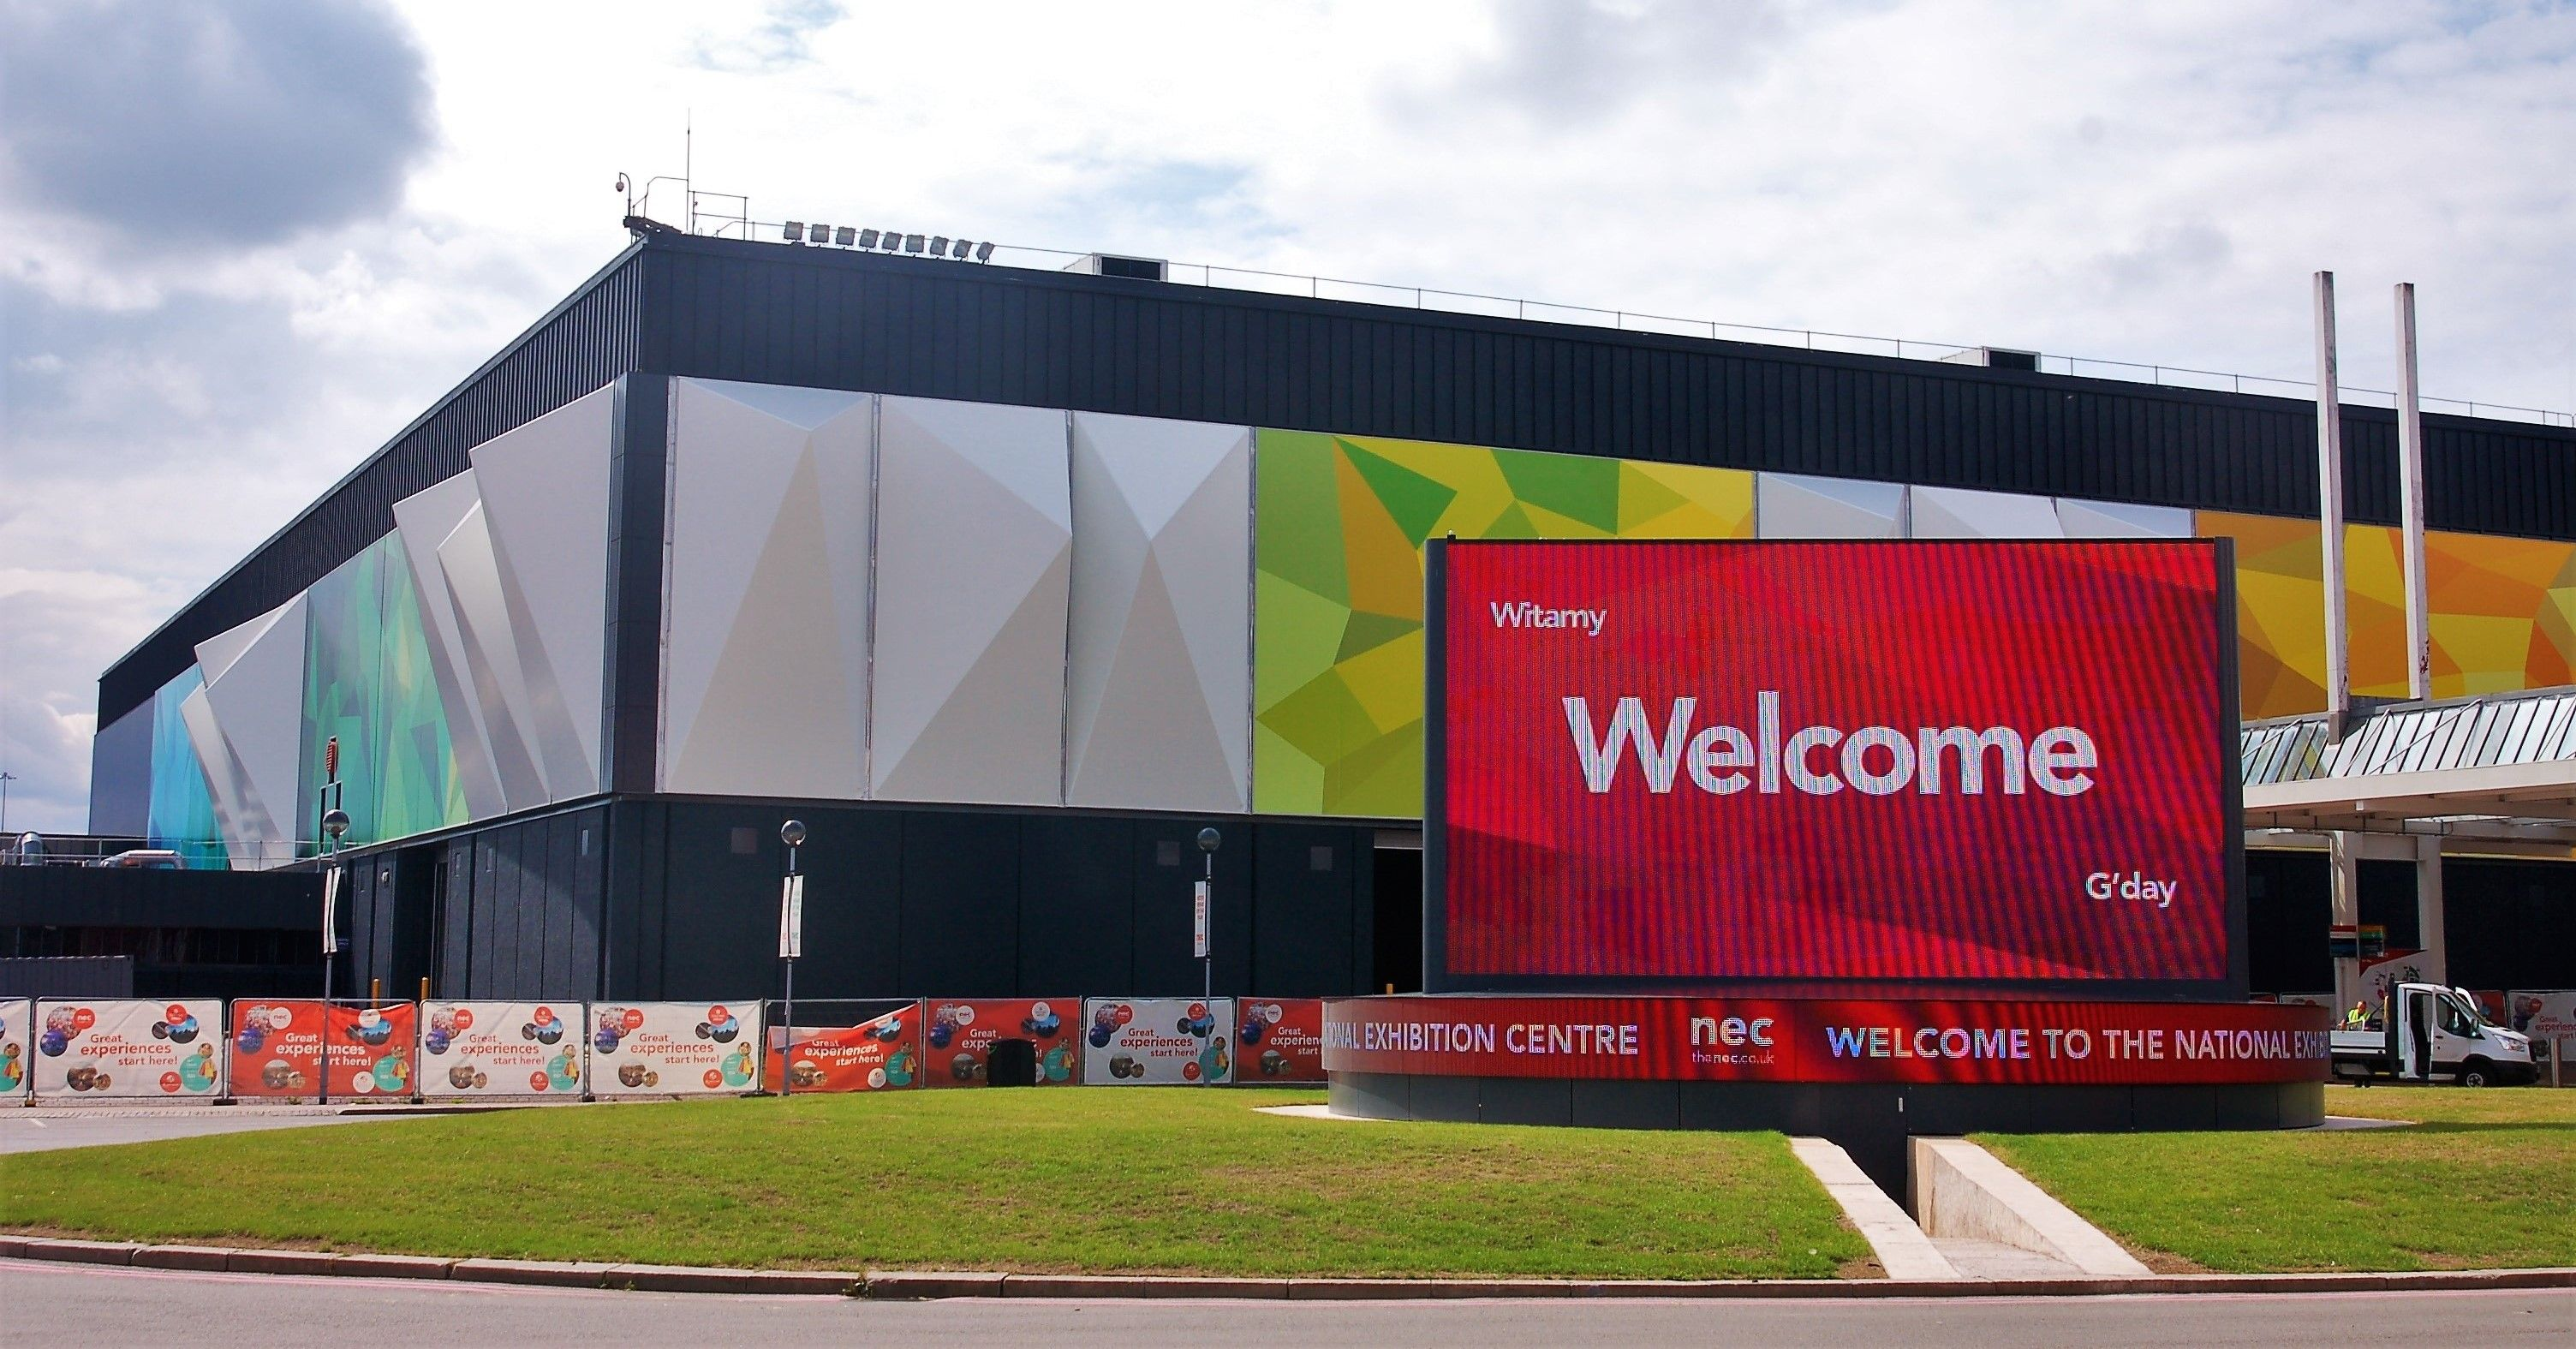 D Printing Exhibition Nec : Dimensional fabric facade and printed over cladding at the nec